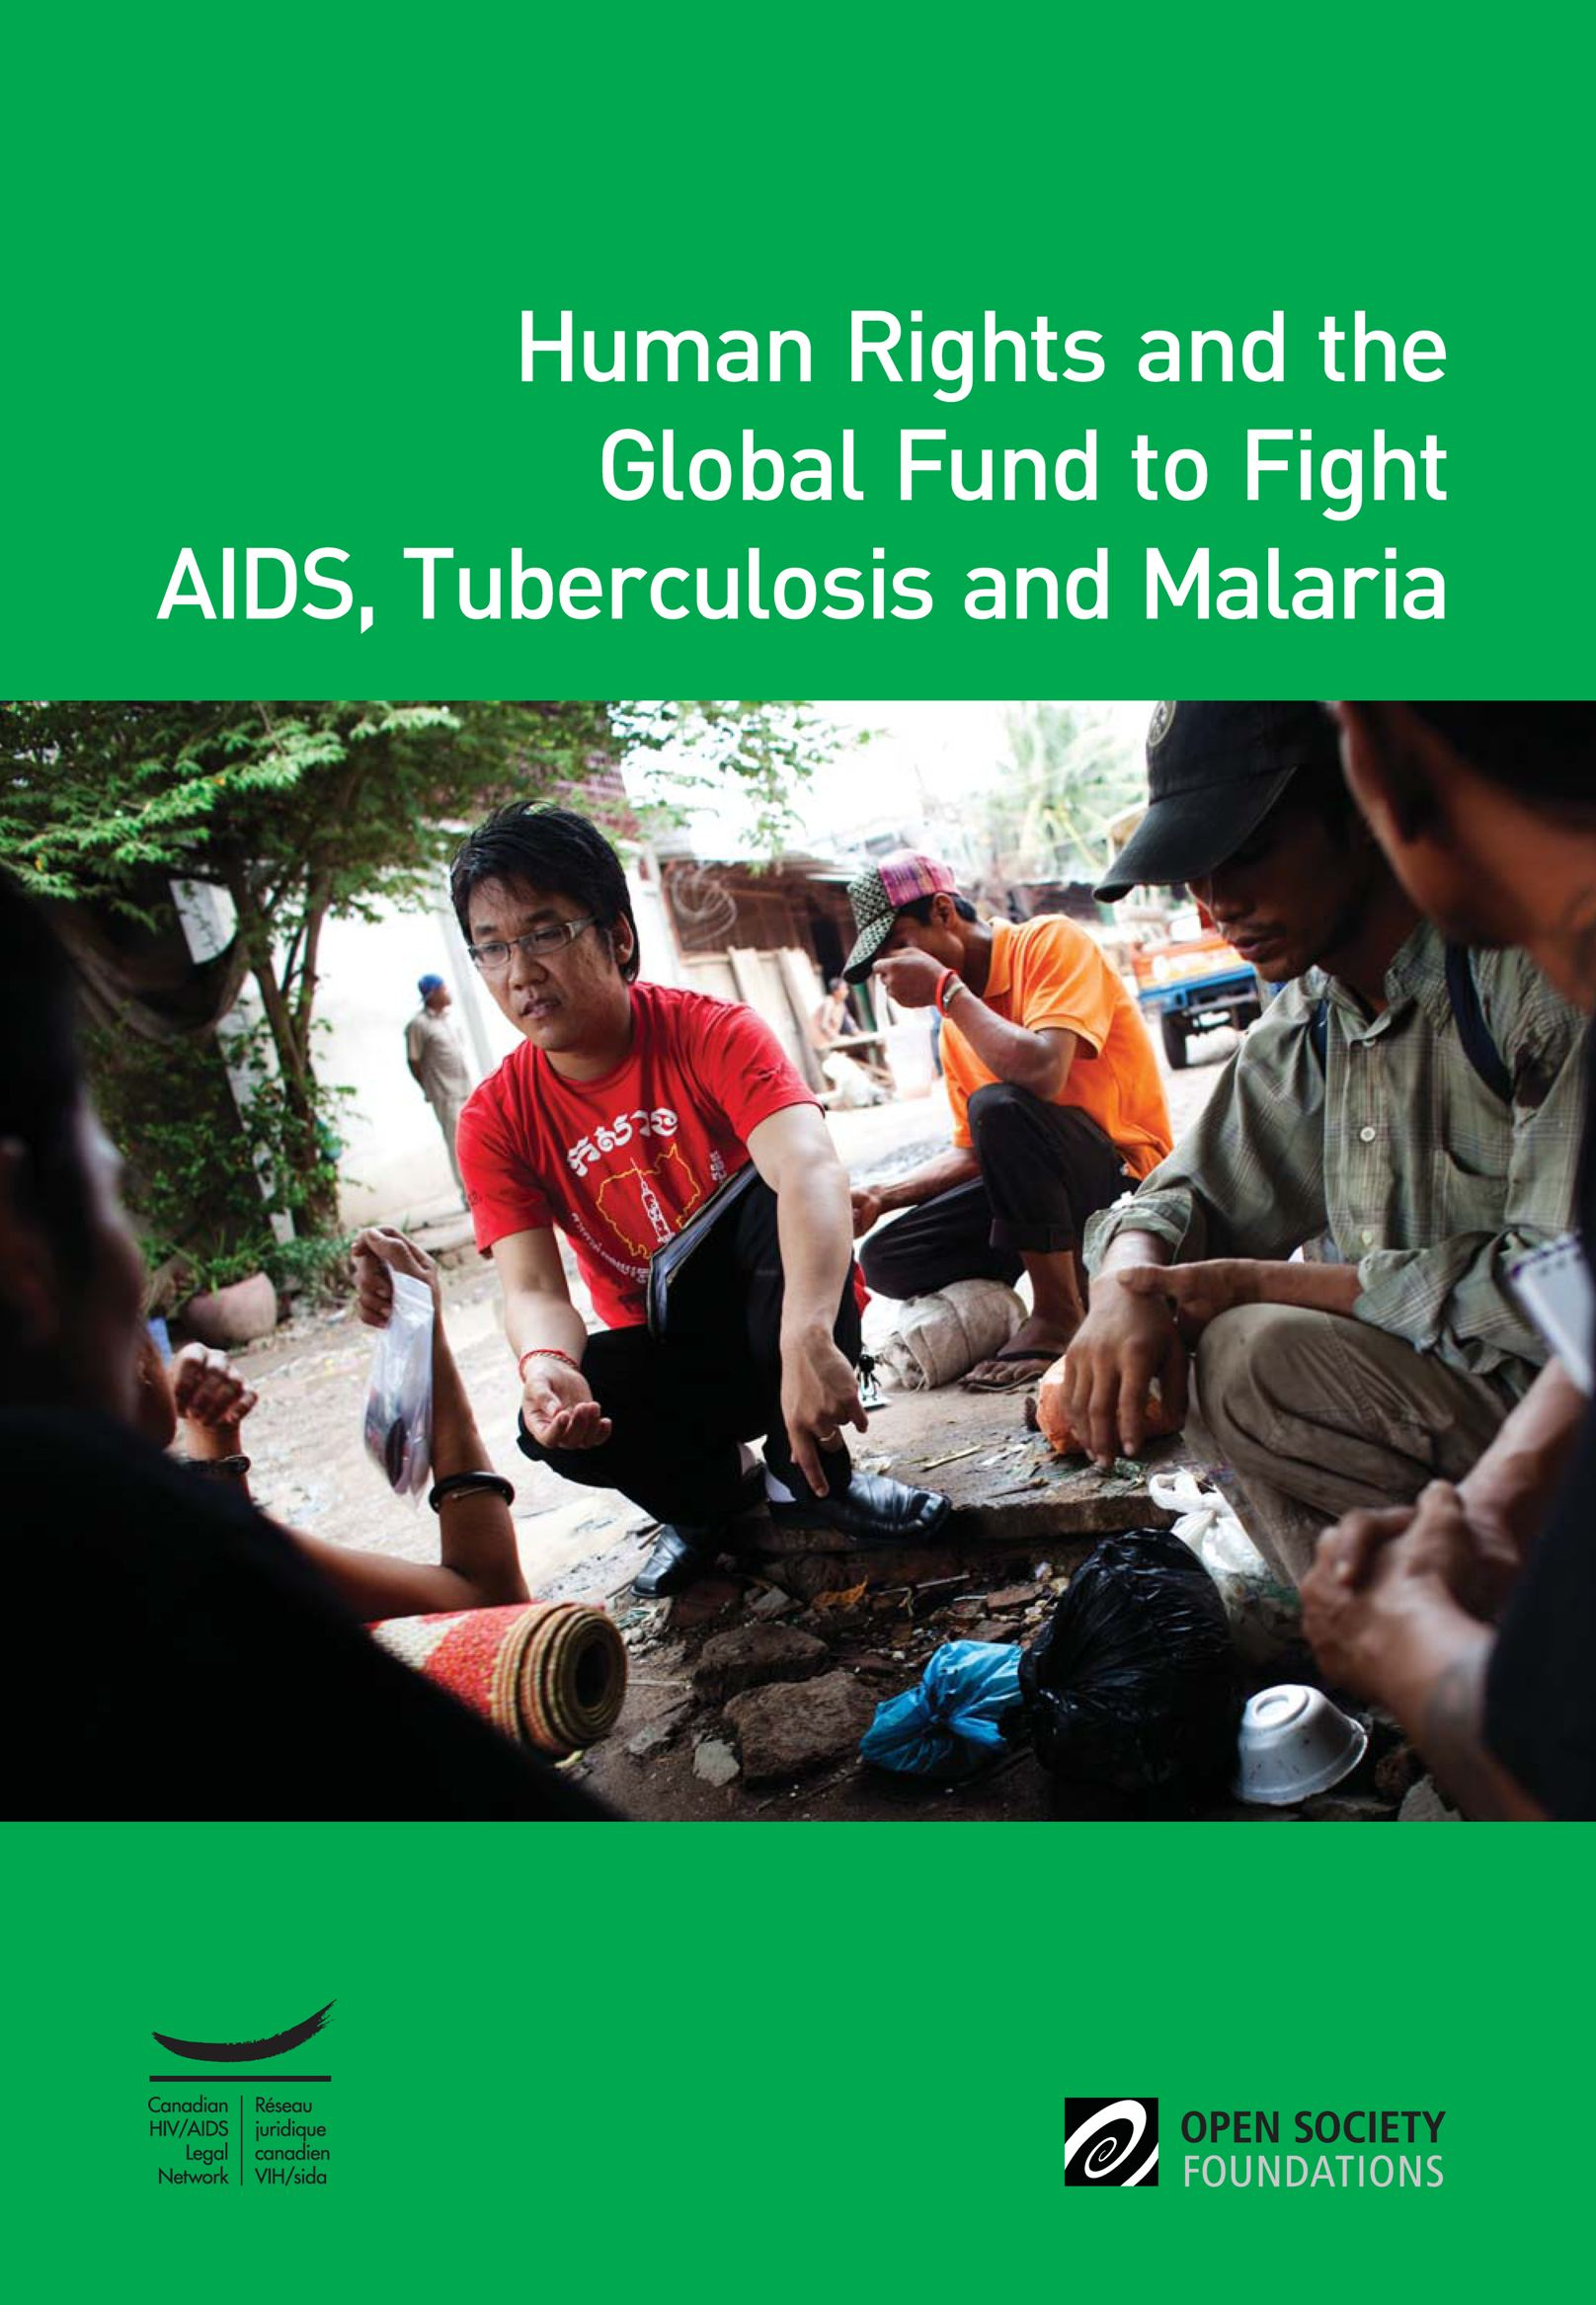 Human Rights and the Global Fund to Fight AIDS, Tuberculosis and Malaria